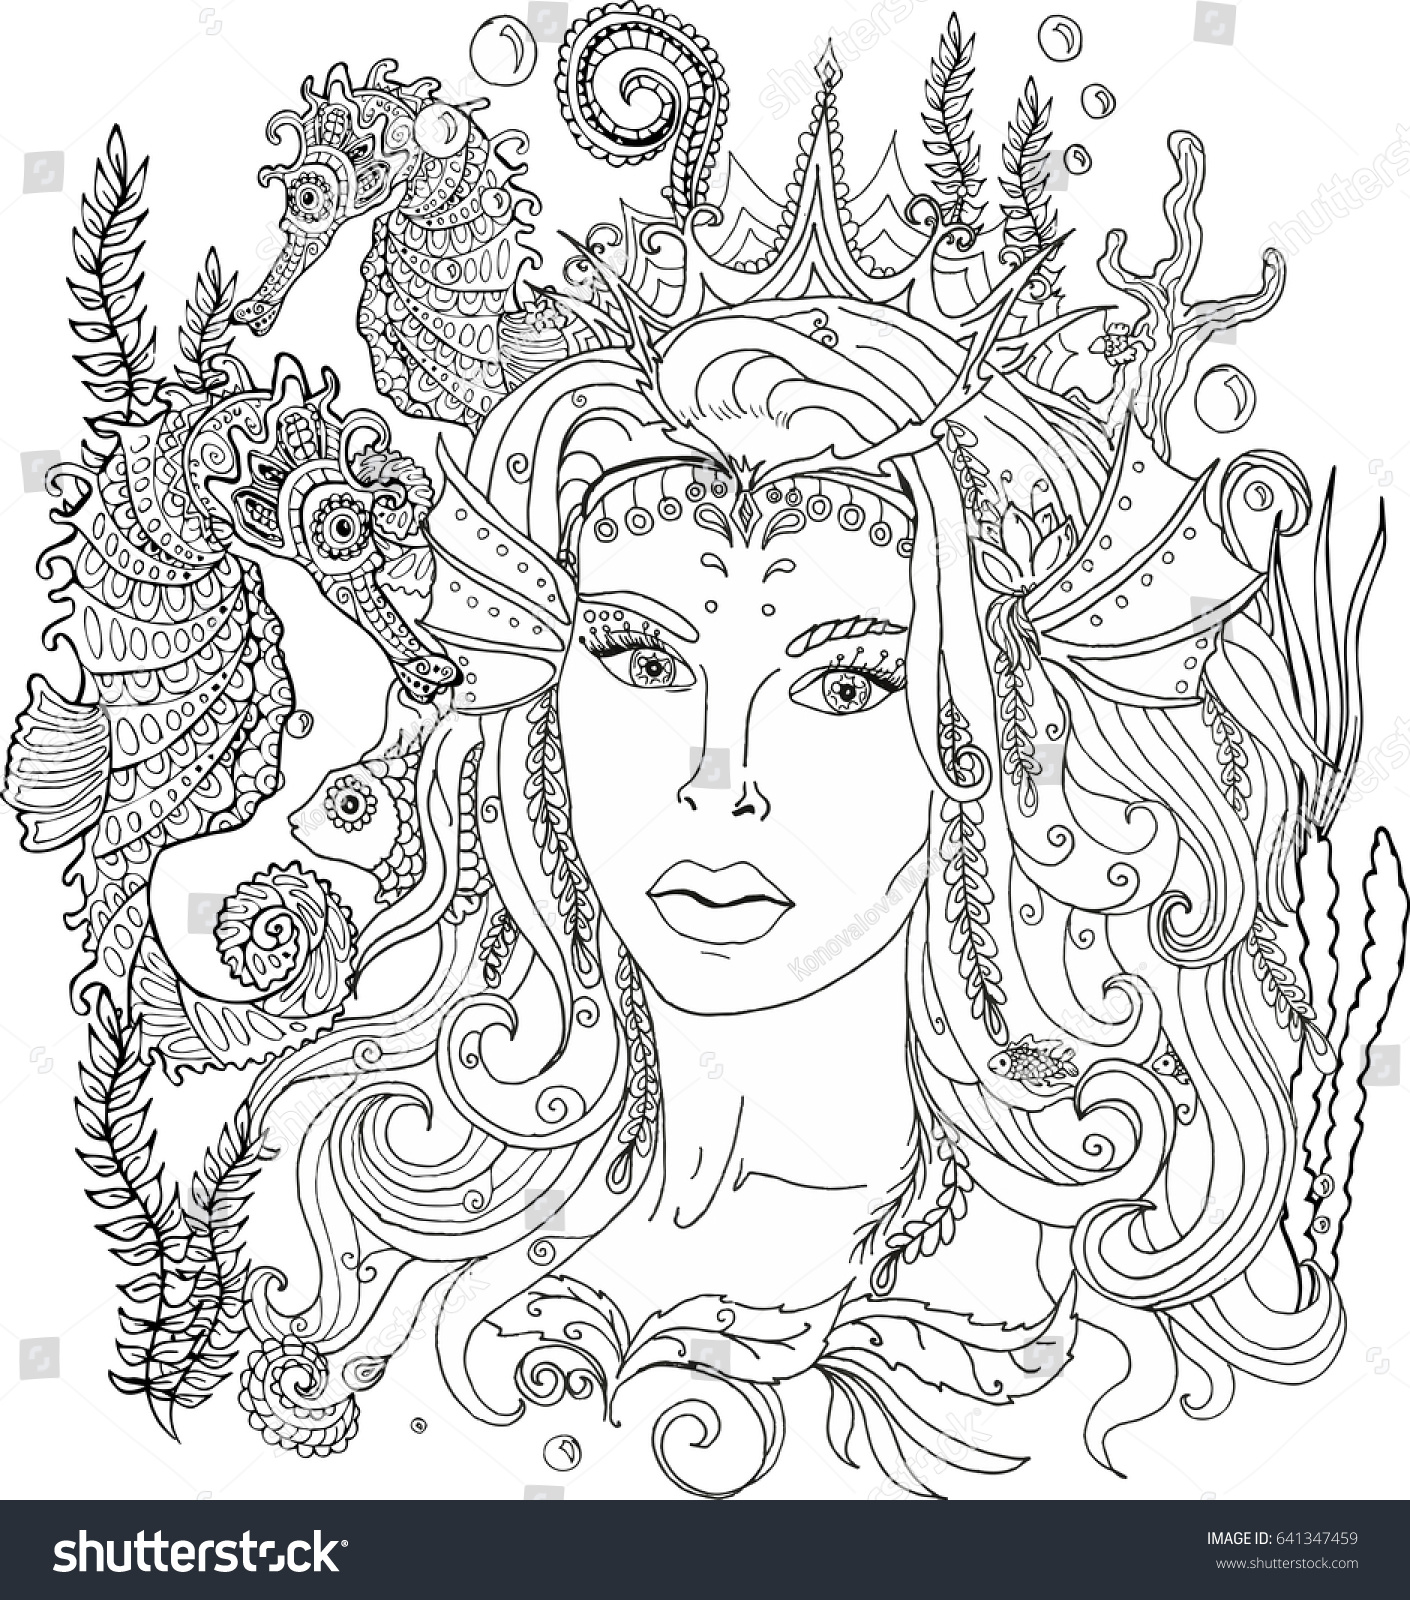 Vector Image Of Coloring Pages For Adults Mermaid Underwater Queen Ornament